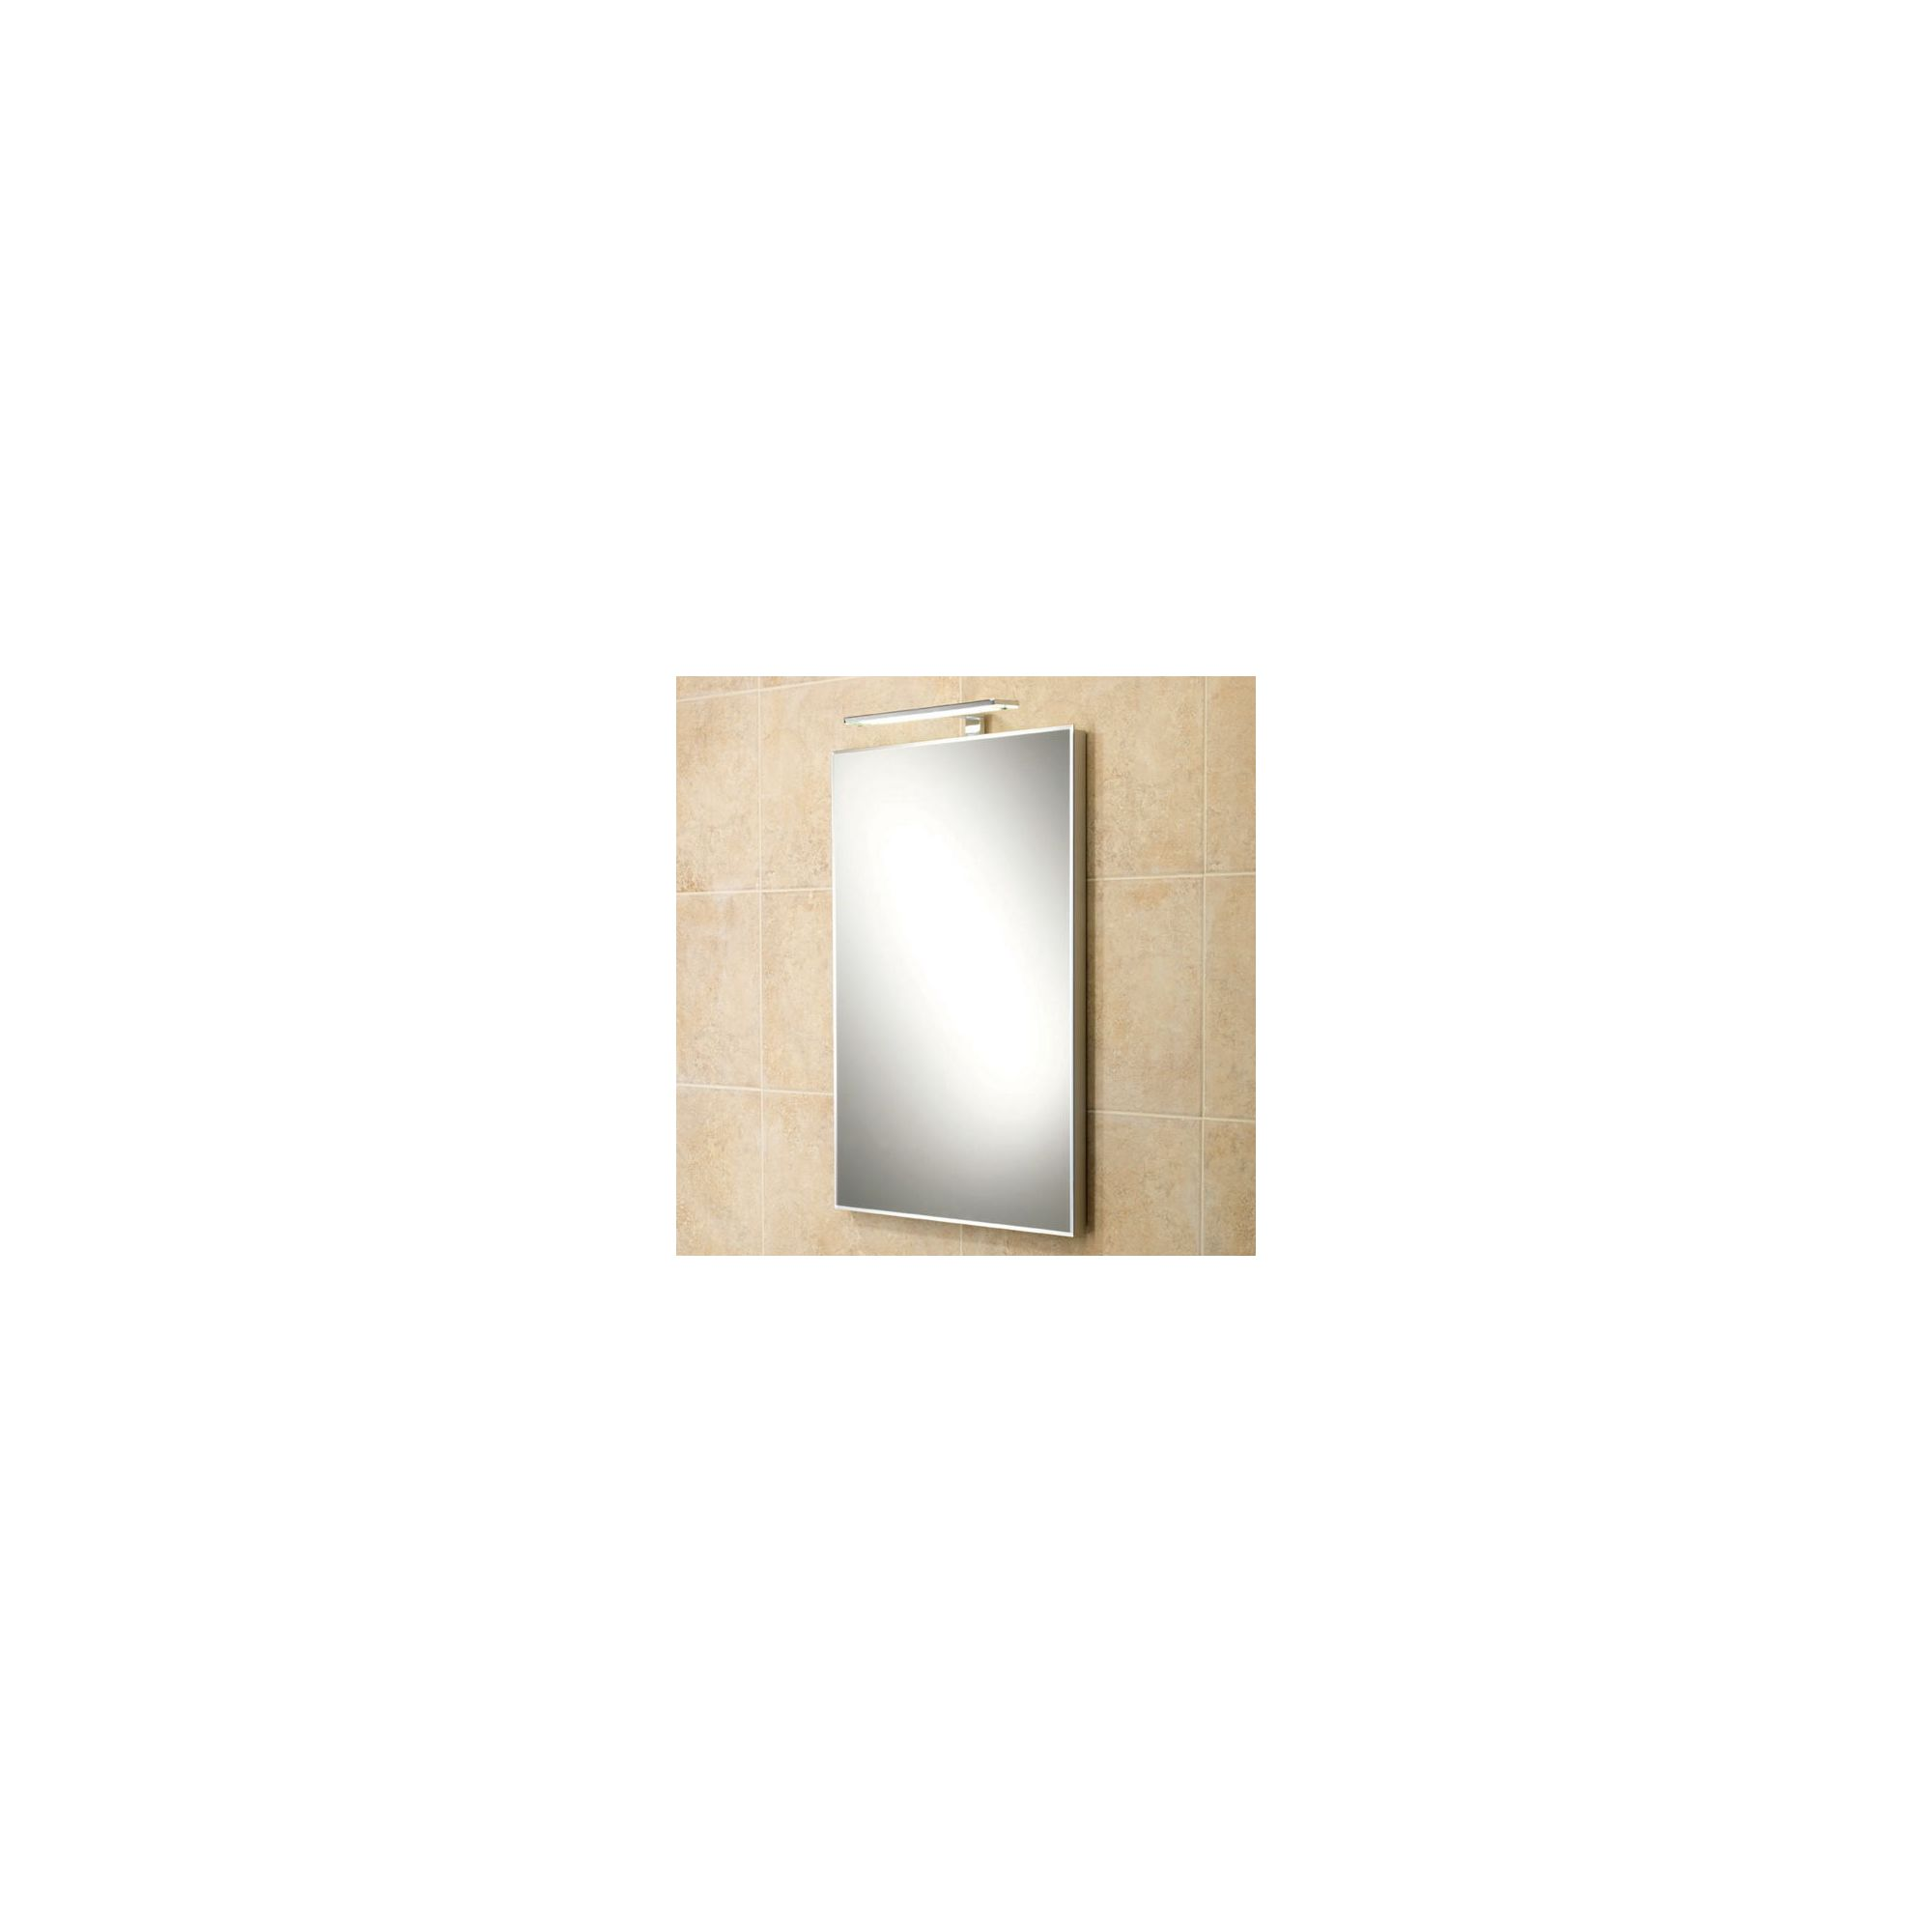 HIB Caro Mirror at Tesco Direct